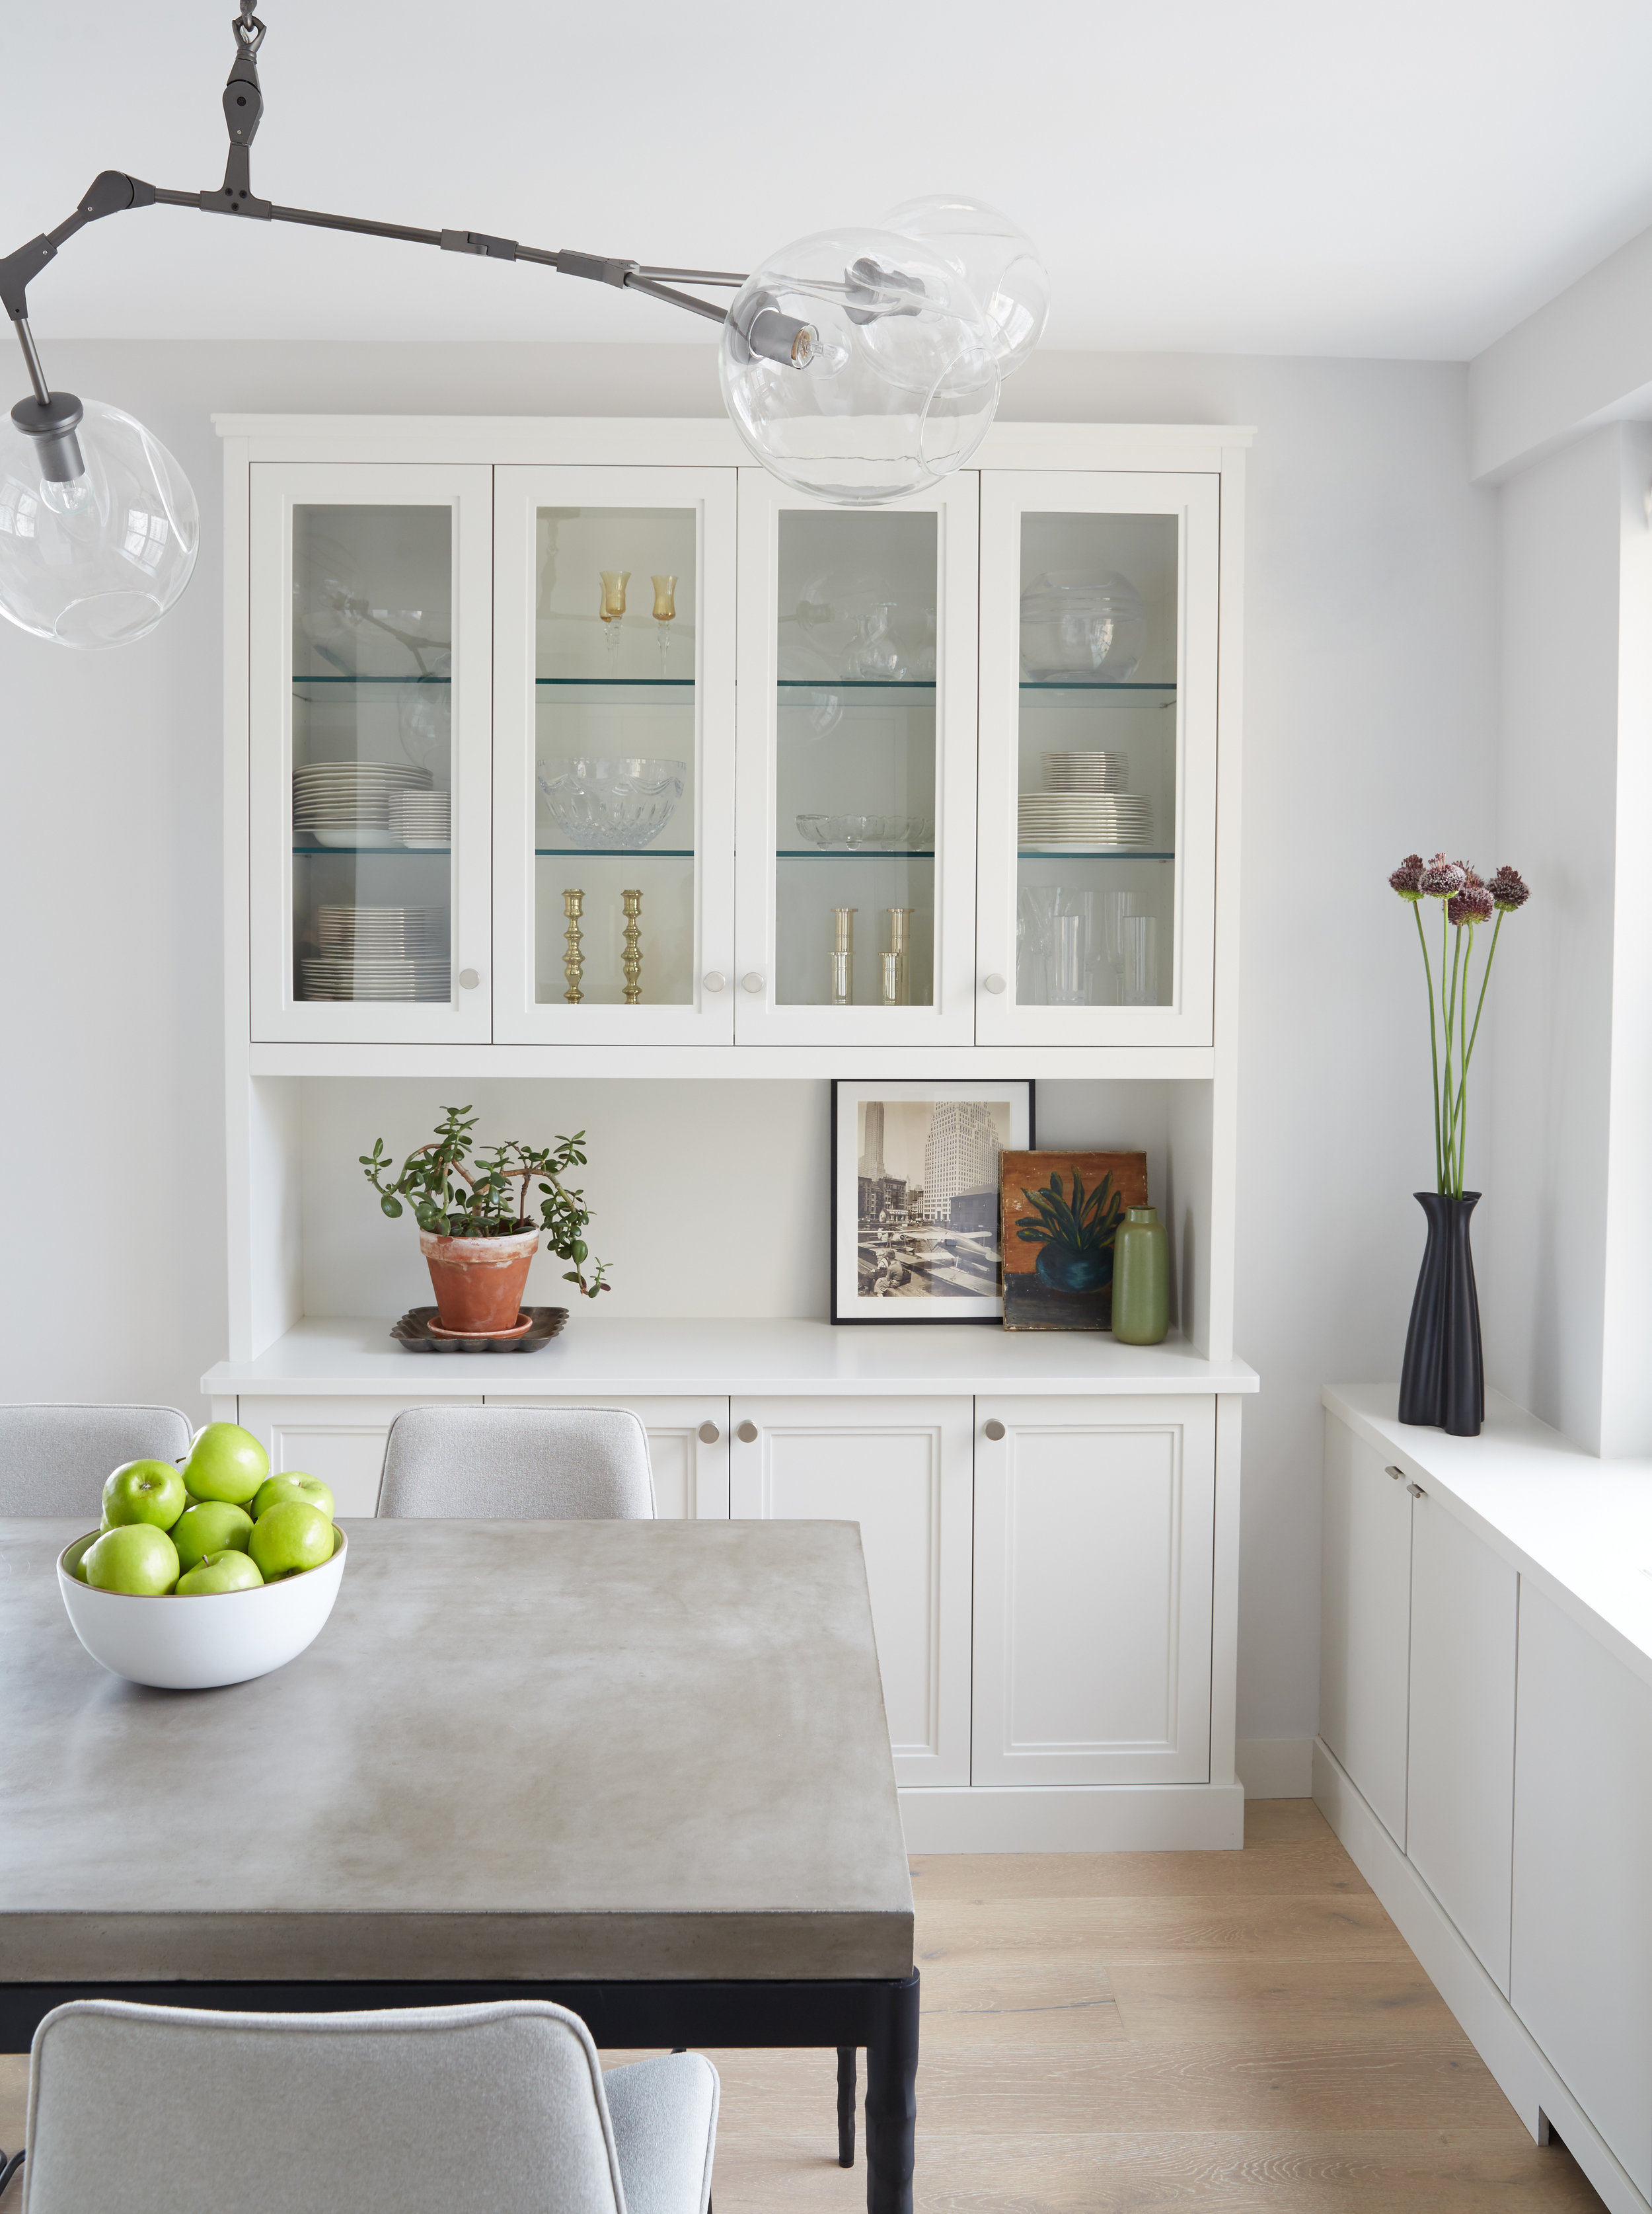 101-duplex-penthouse-dining-room-cabinetry